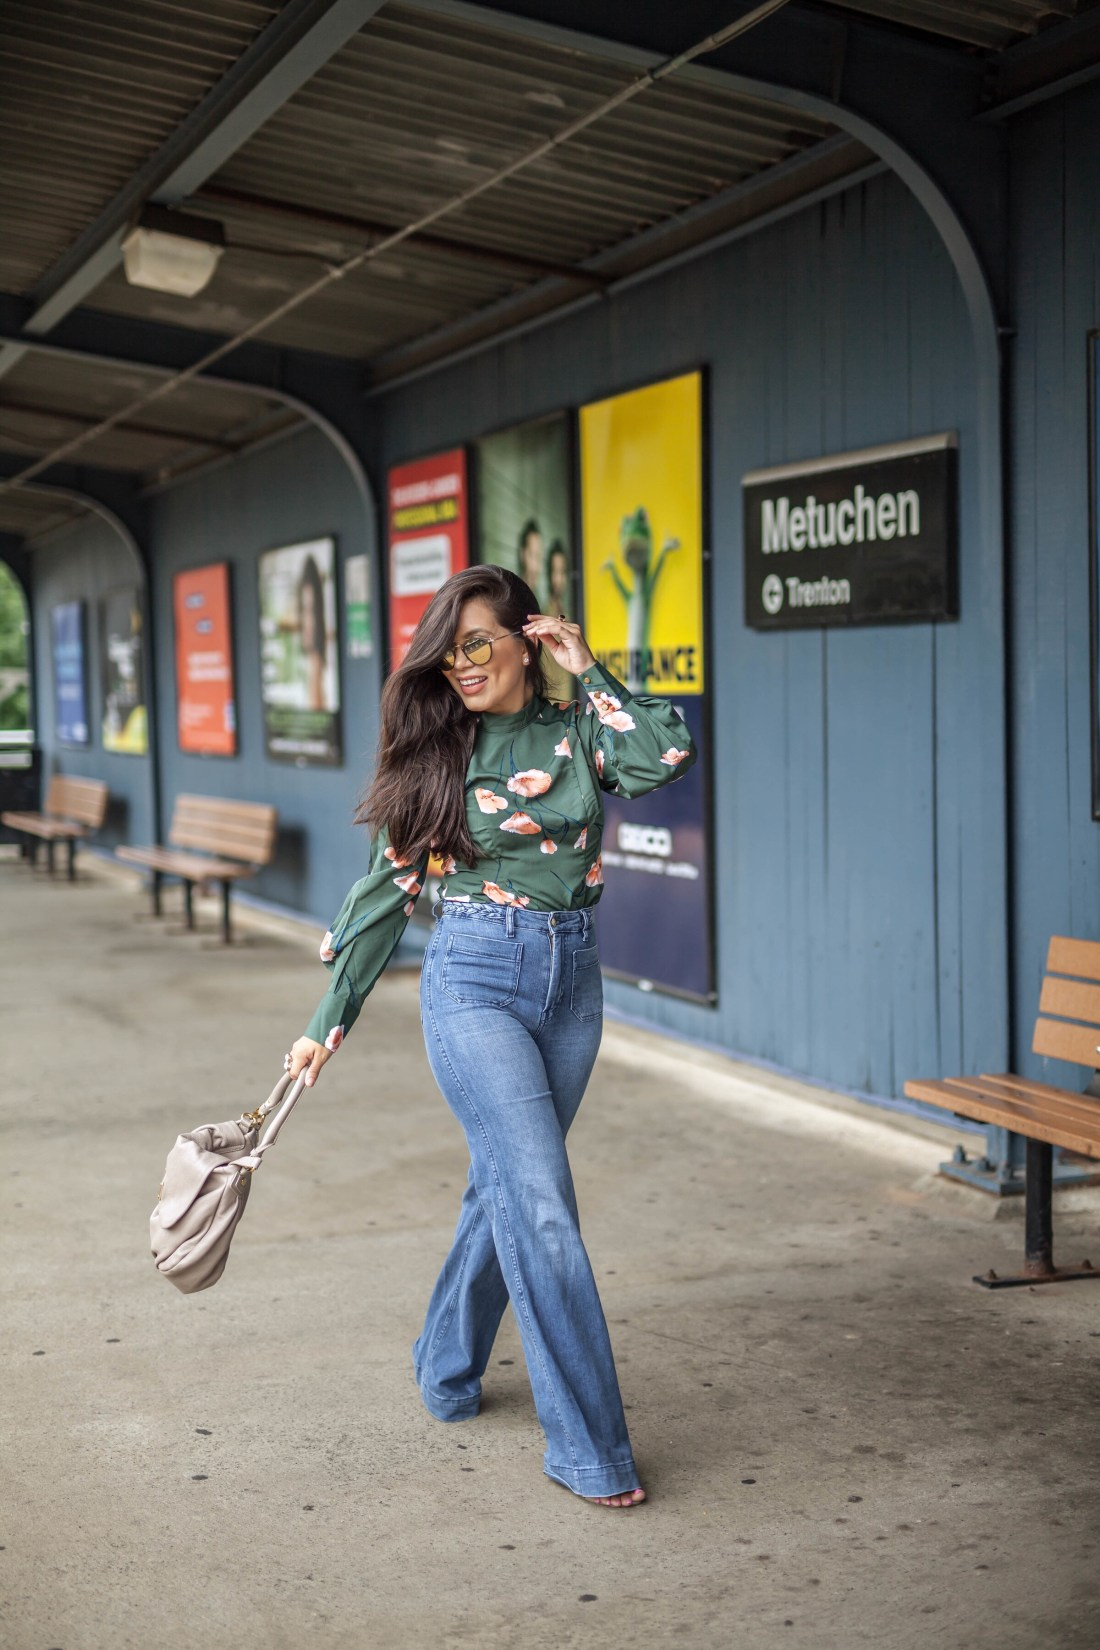 How to do a photoshoot at a train station